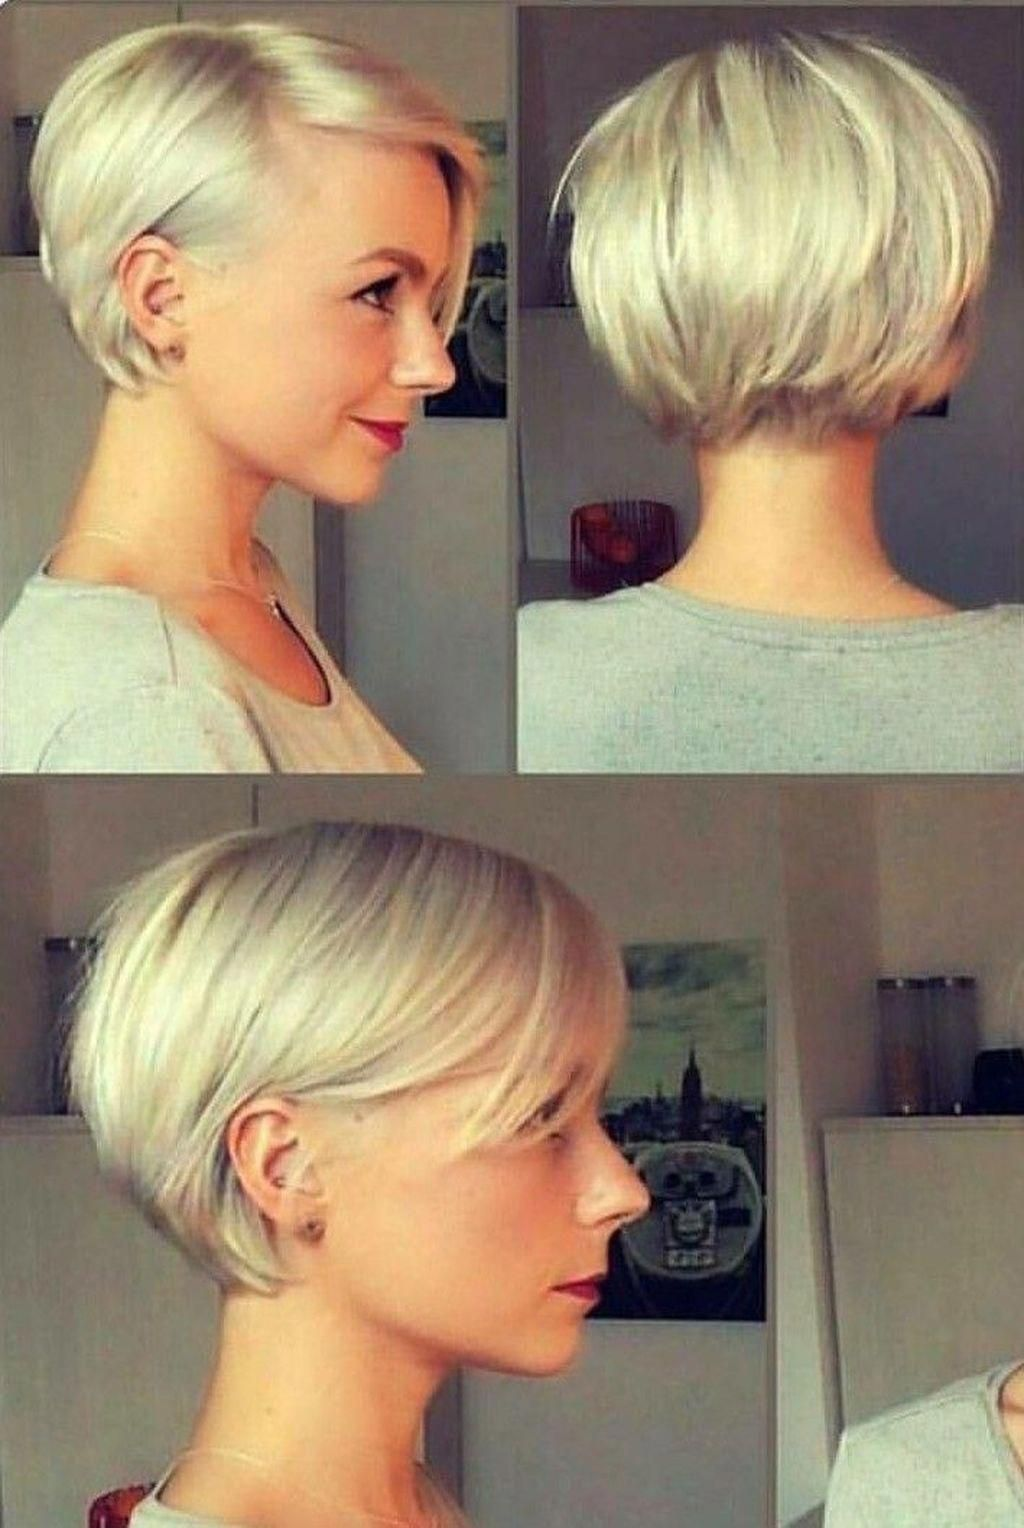 Awesome 20 Charming Short Hairstyles Ideas For Women Shorthairstylesforwomen Hair Styles Thick Hair Styles Short Bob Hairstyles